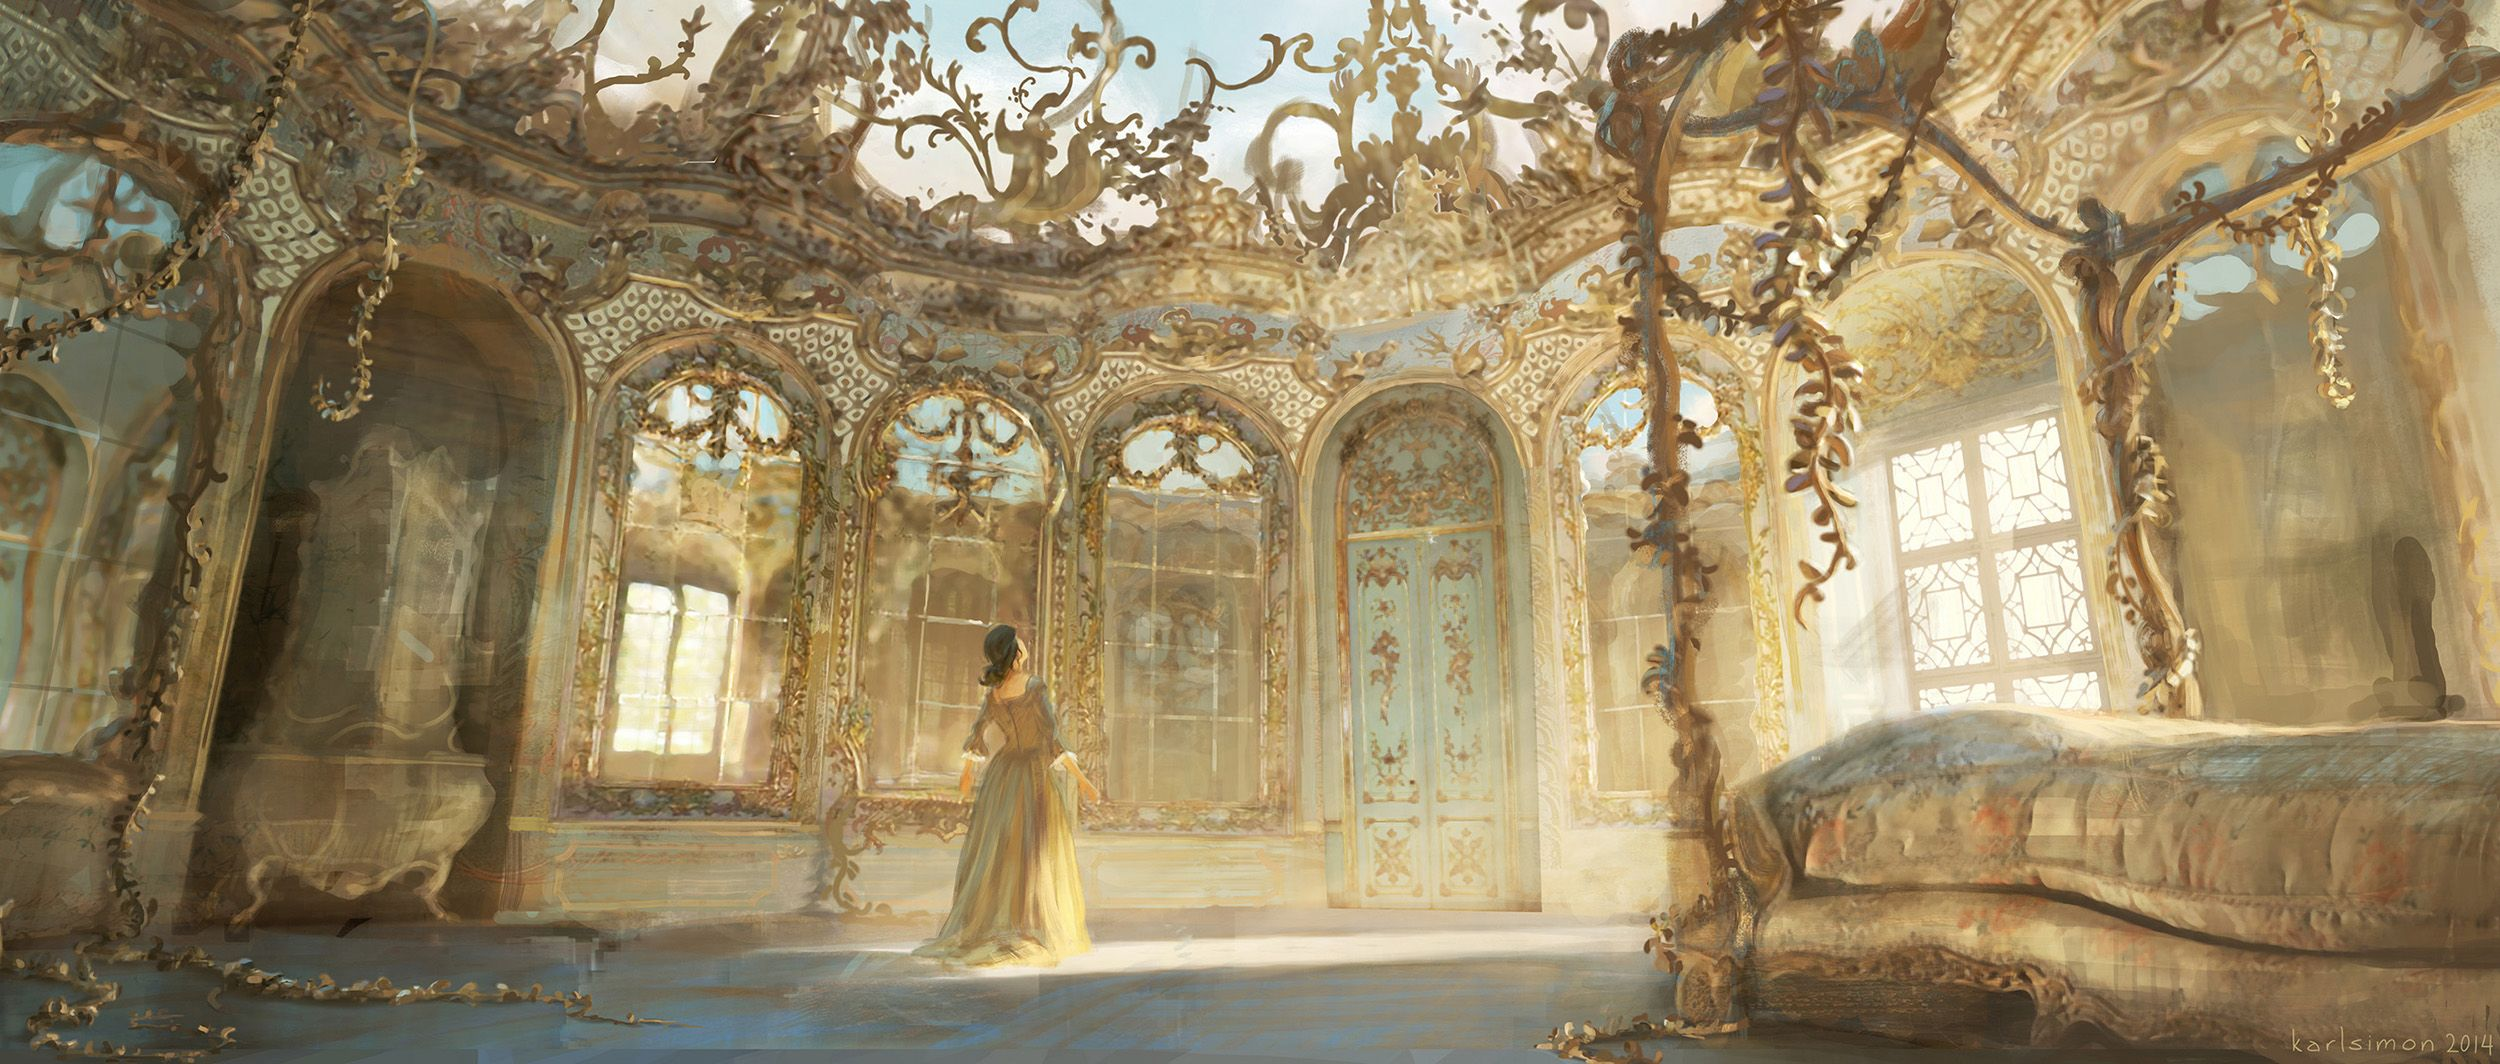 Beauty And The Beast Concept Art By Karl Simon With Images